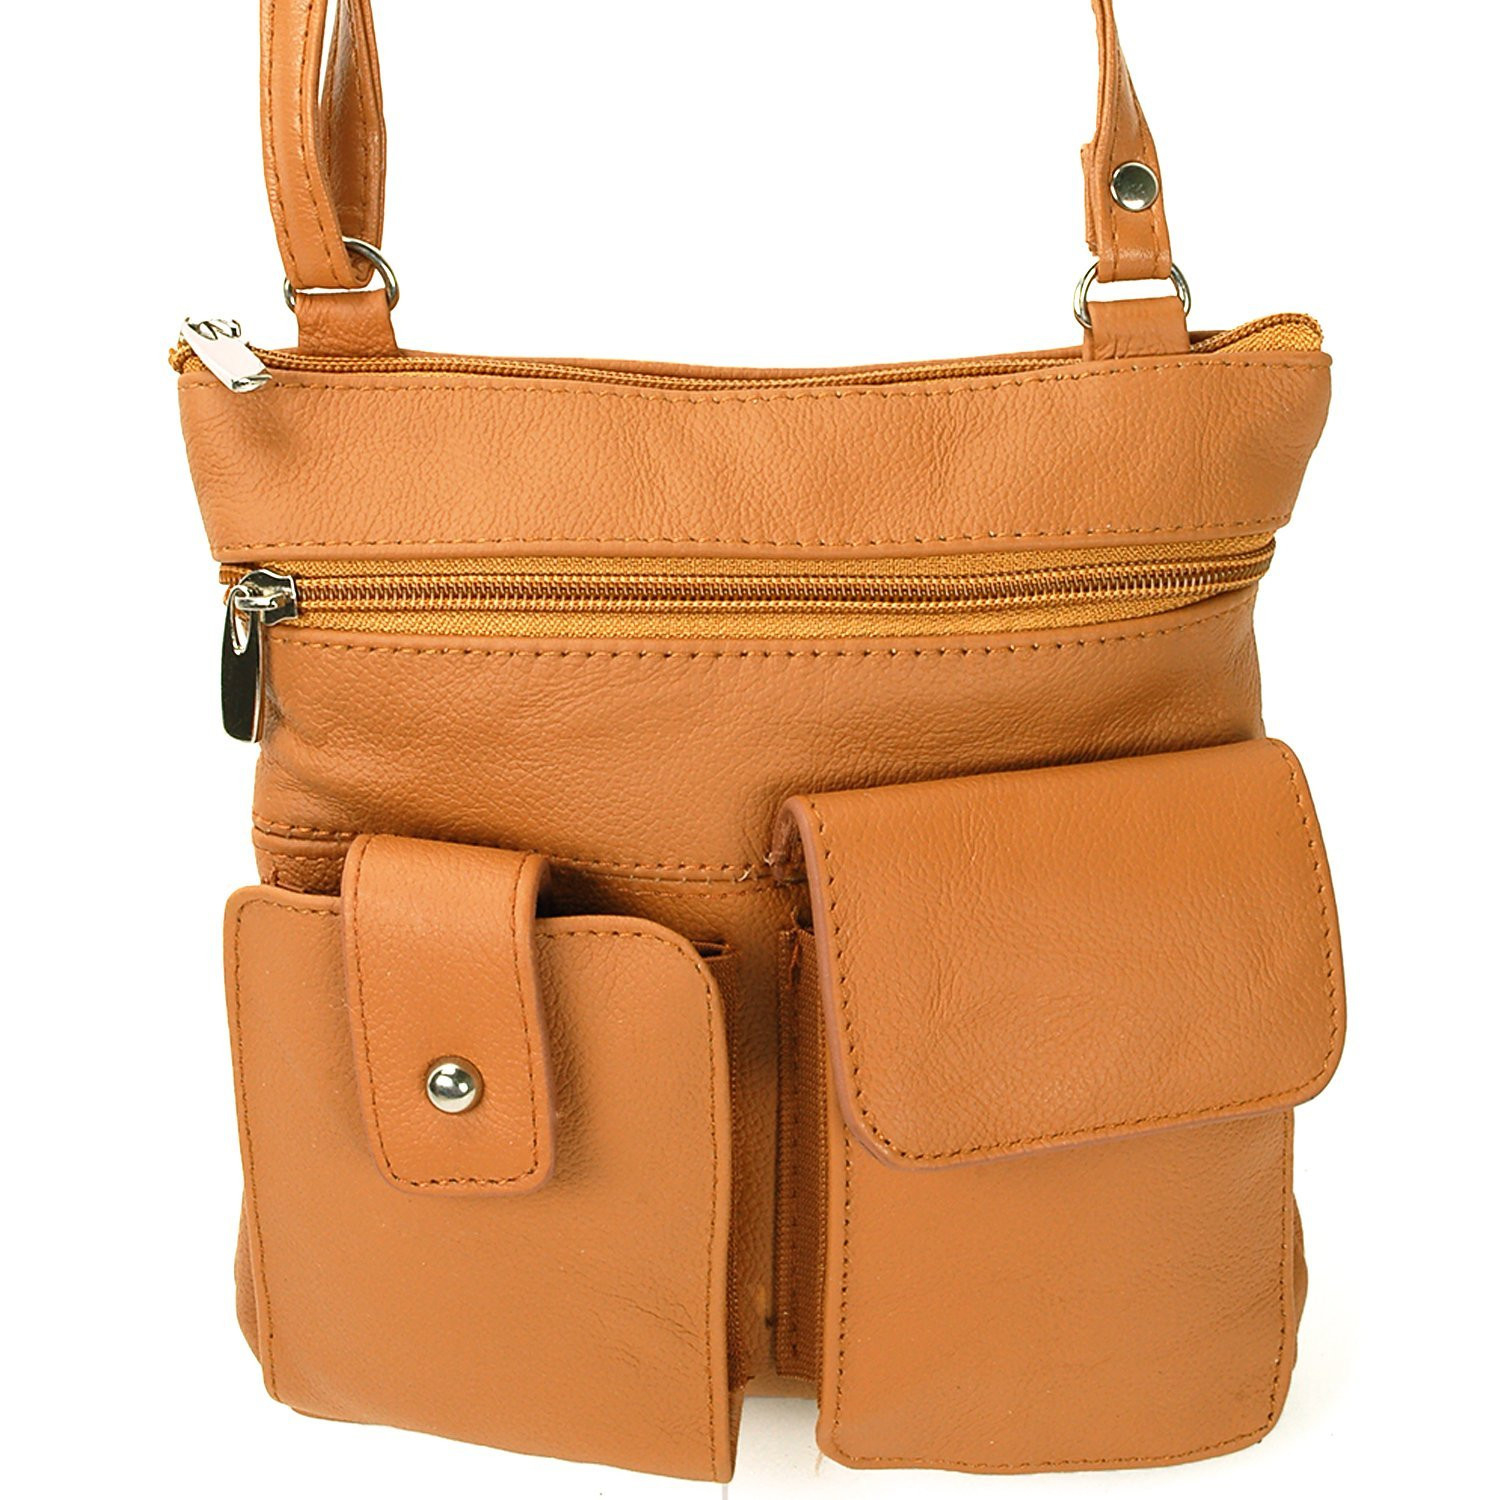 Soft Leather Two Front Purse Tan Color Cross-body Style - Black (CH-028-TAN-01) photo